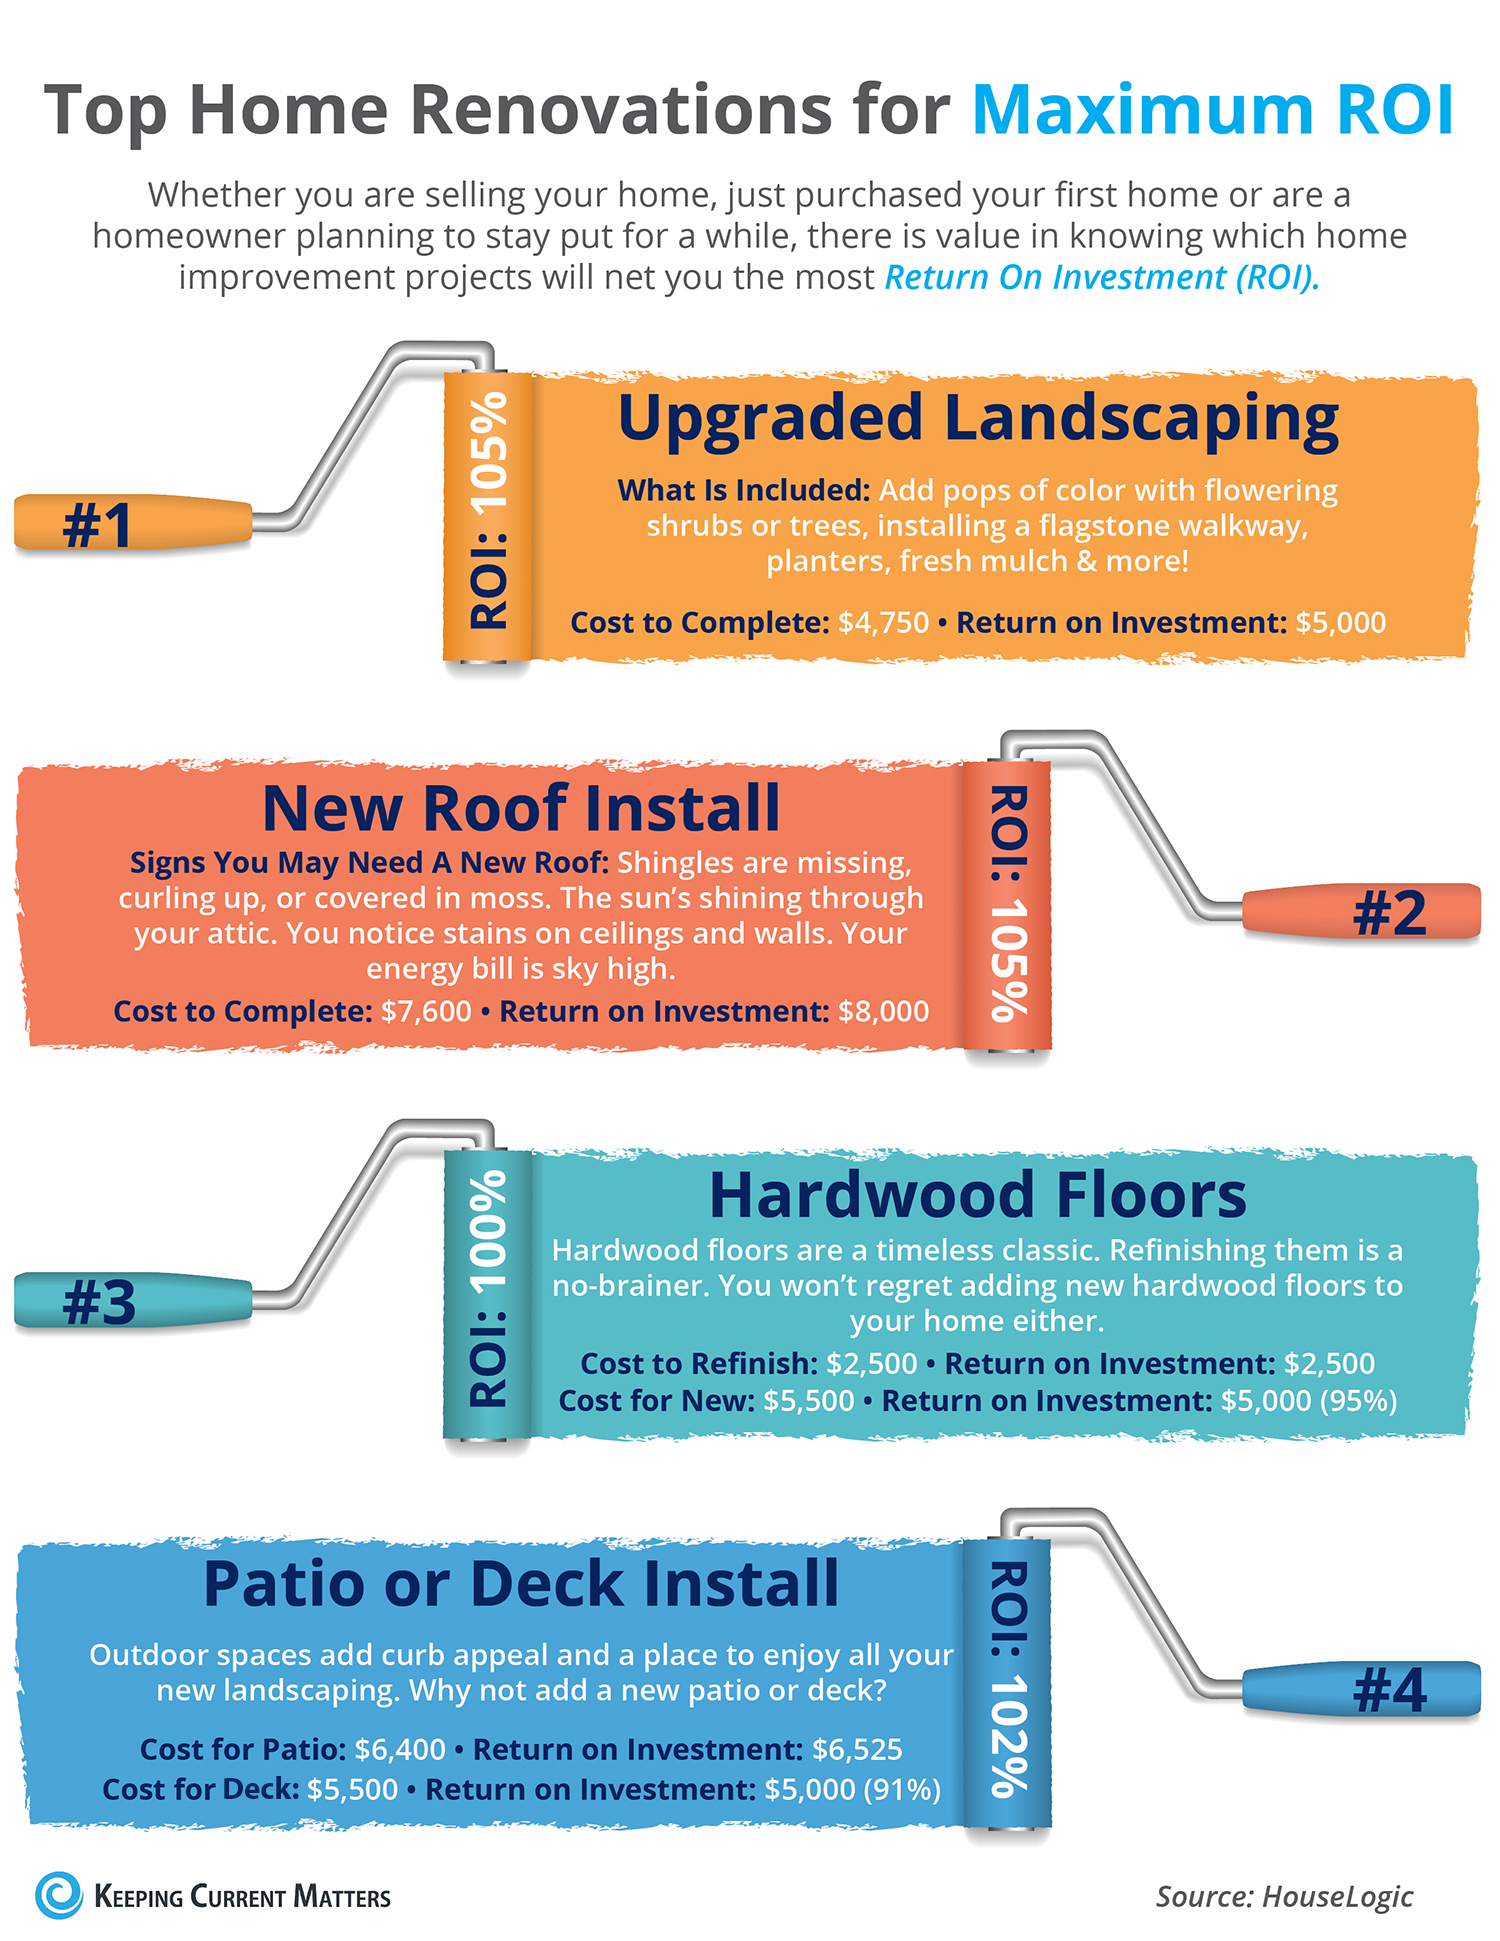 Top Home Renovations For Maximum Roi Infographic Keeping Cur Matters